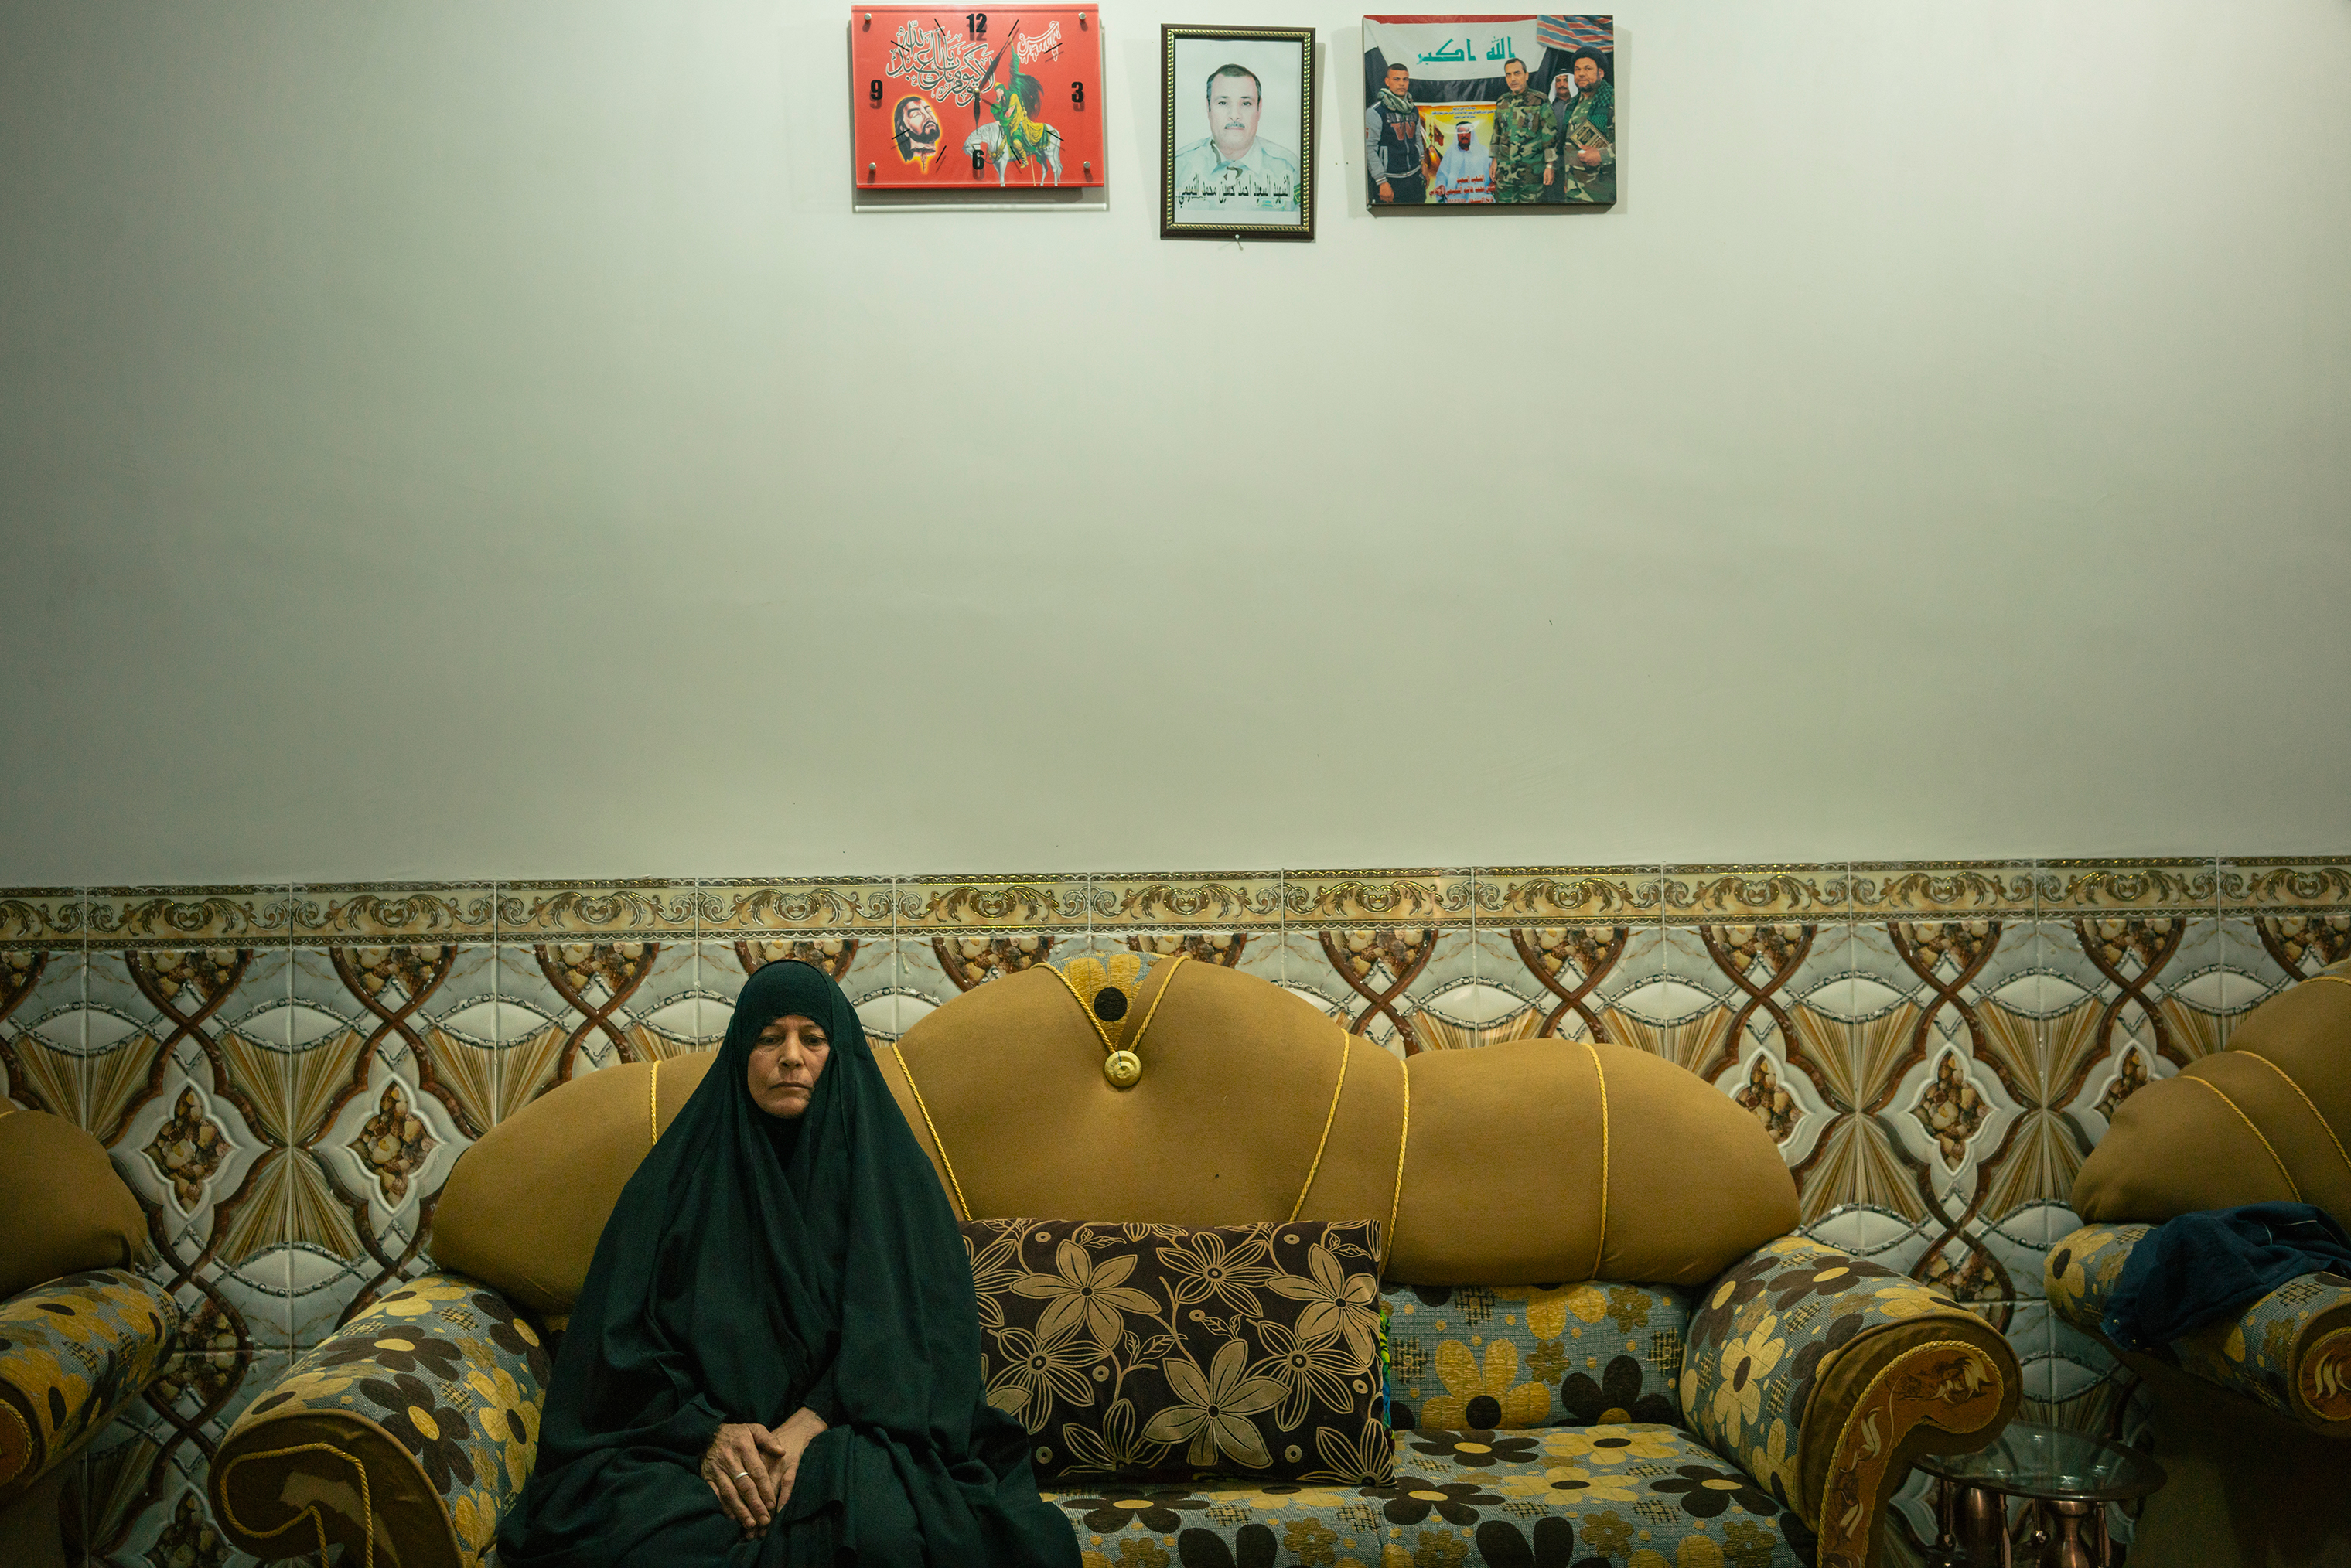 """Fatima Habib, 49, in her home in al-Zijalba. Her husband was killed fighting ISIS. Now she says her 16-year-old son has joined a local militia in case the jihadists return. """"He will avenge his father's death,"""" she says"""